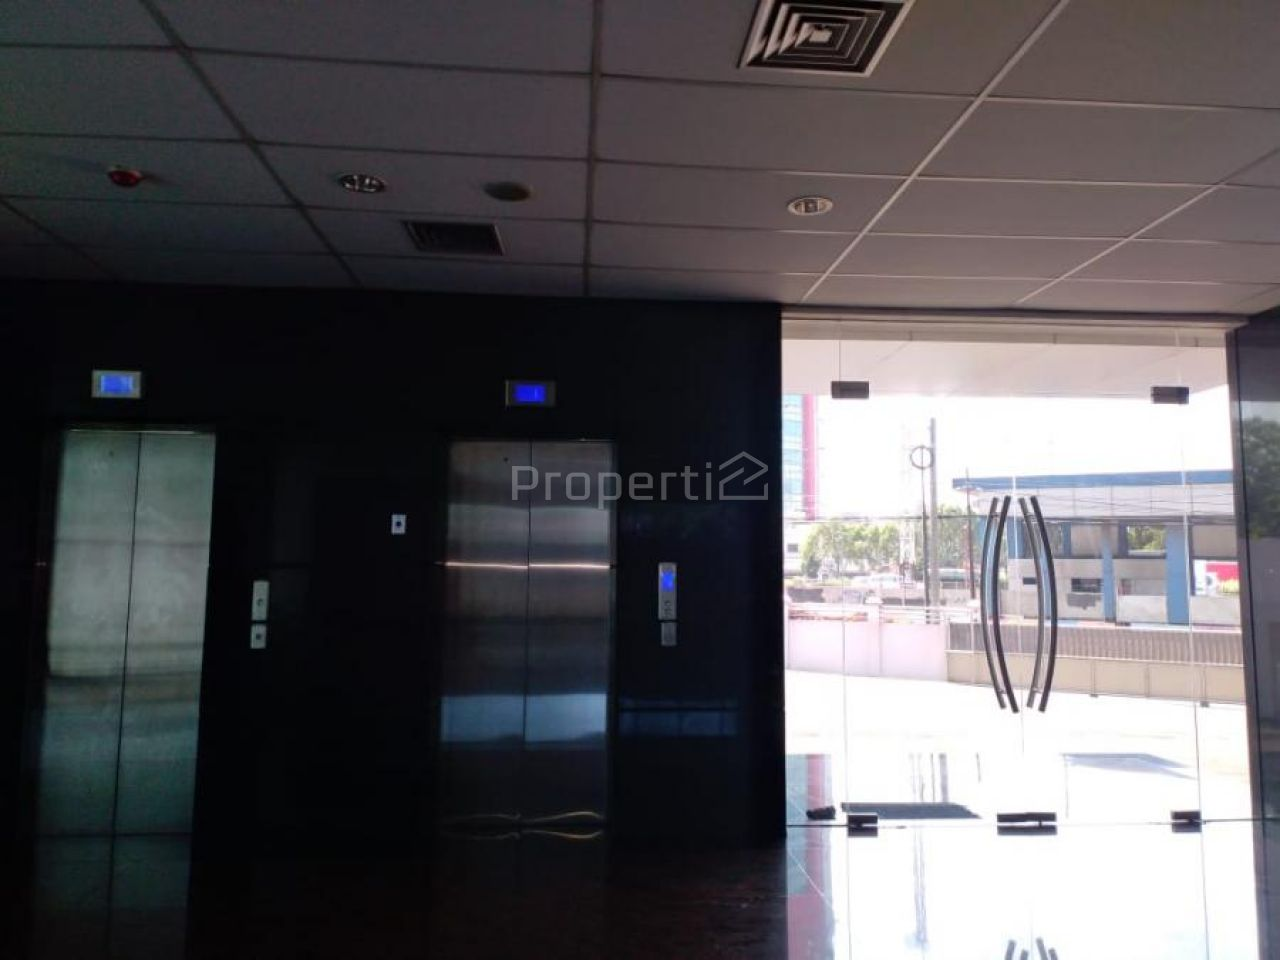 New Office Building at Business District of TB Simatupang, DKI Jakarta